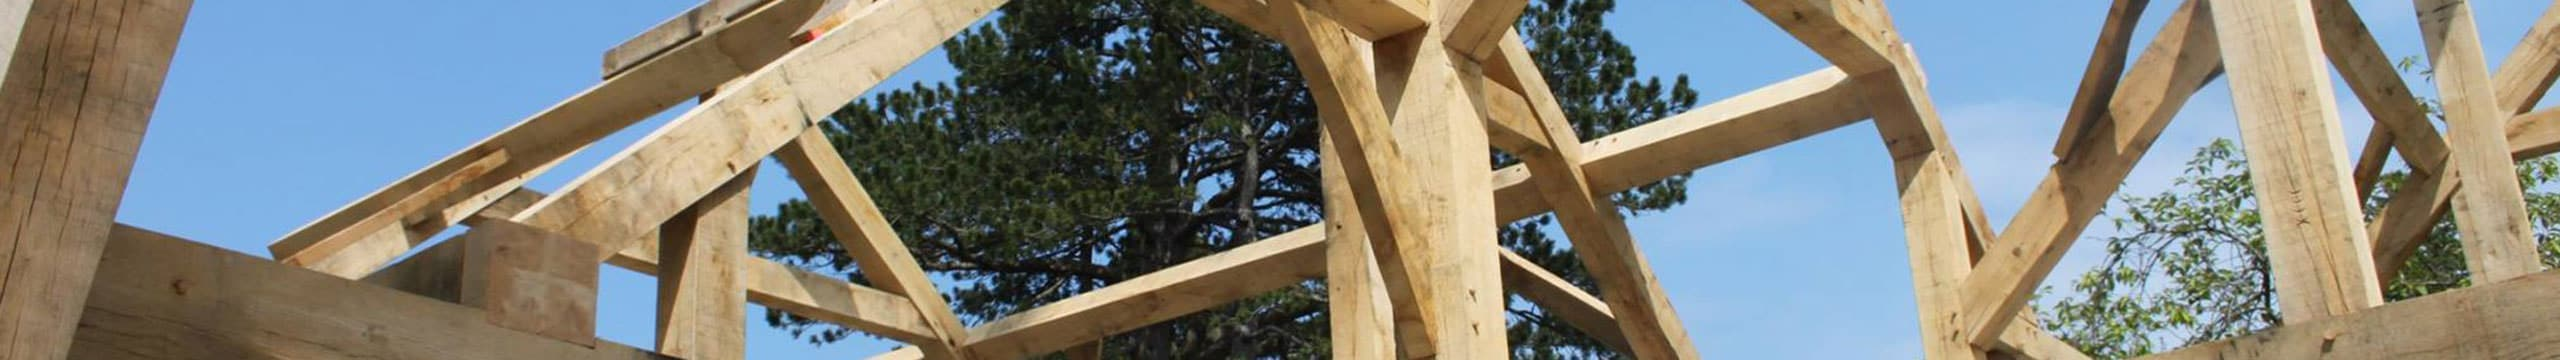 timber frame erection